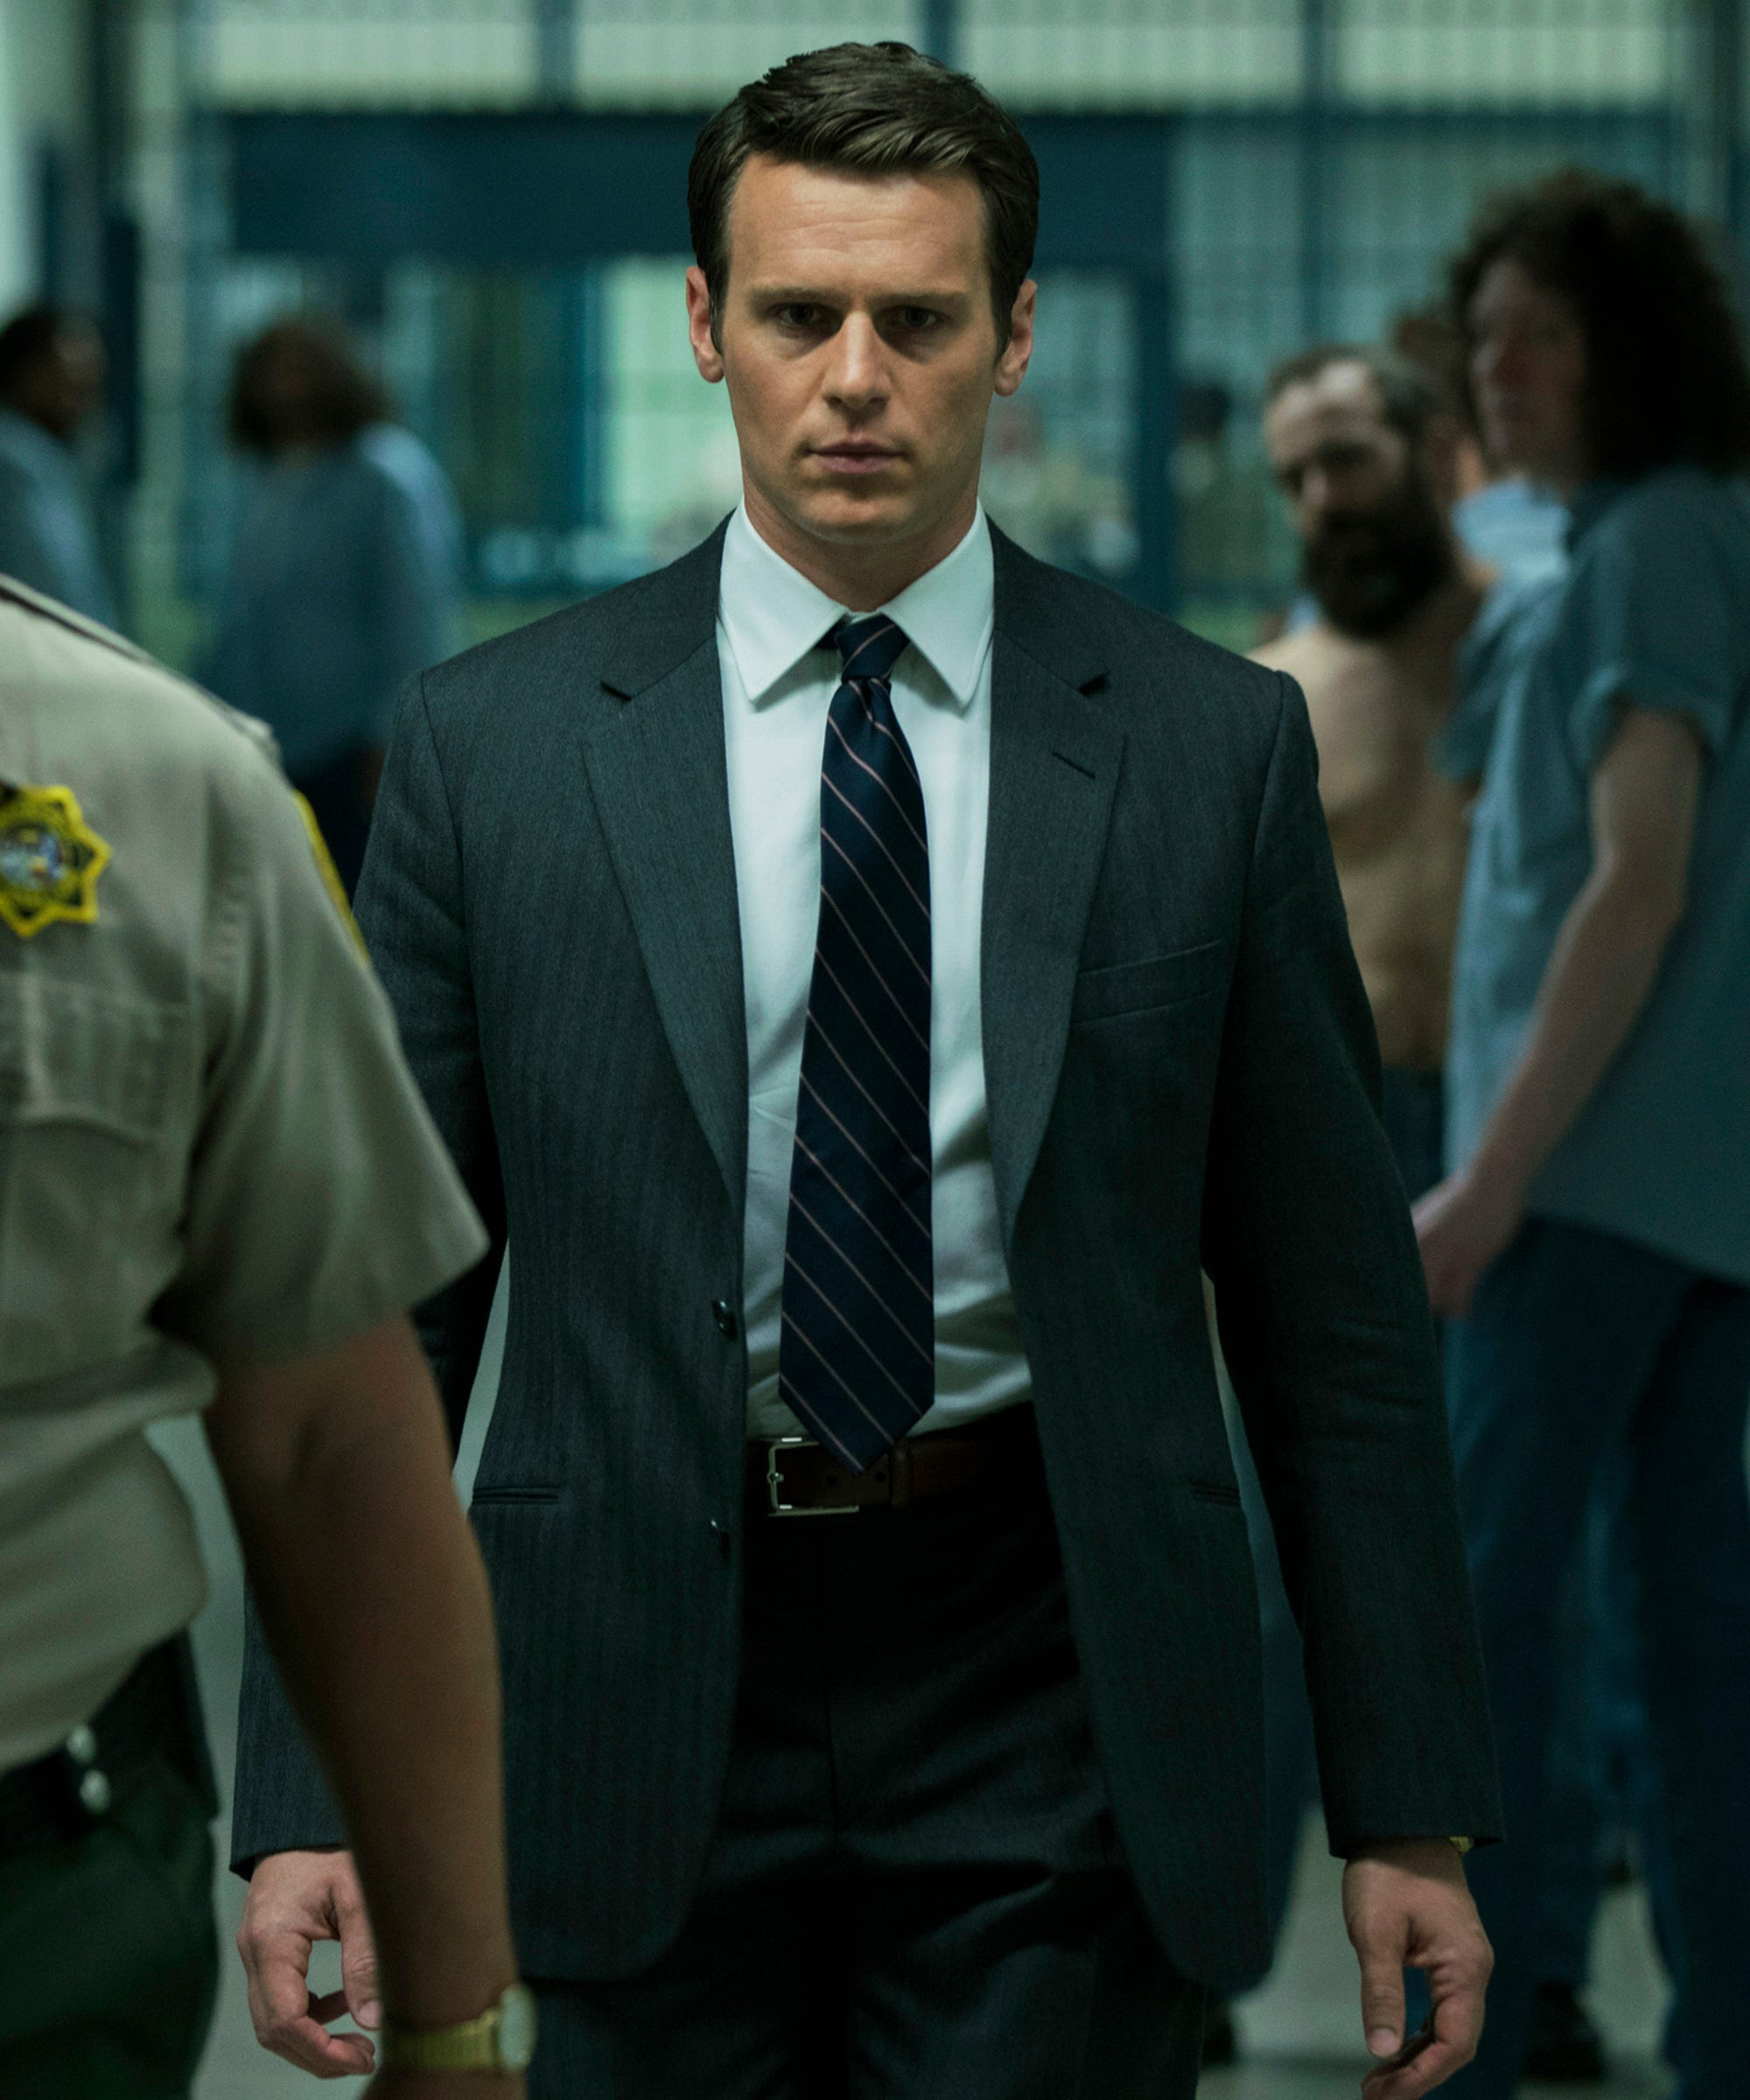 Mindhunter Will Focus On These Gruesome Murders In Season 2